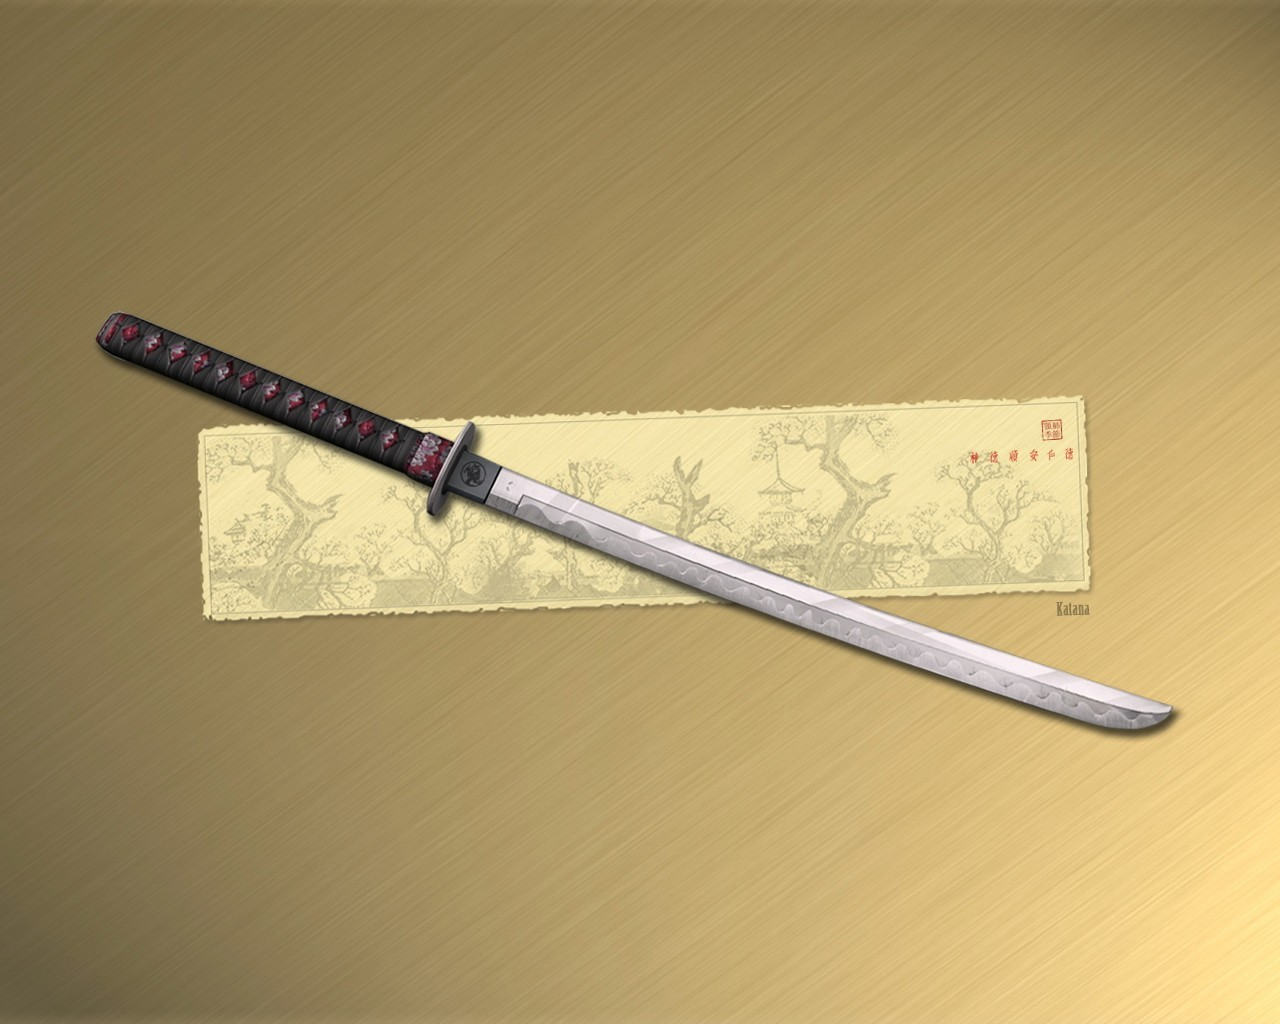 Awesome HD Wallpaper Collection: Ninja Sword Wallpaper by ...